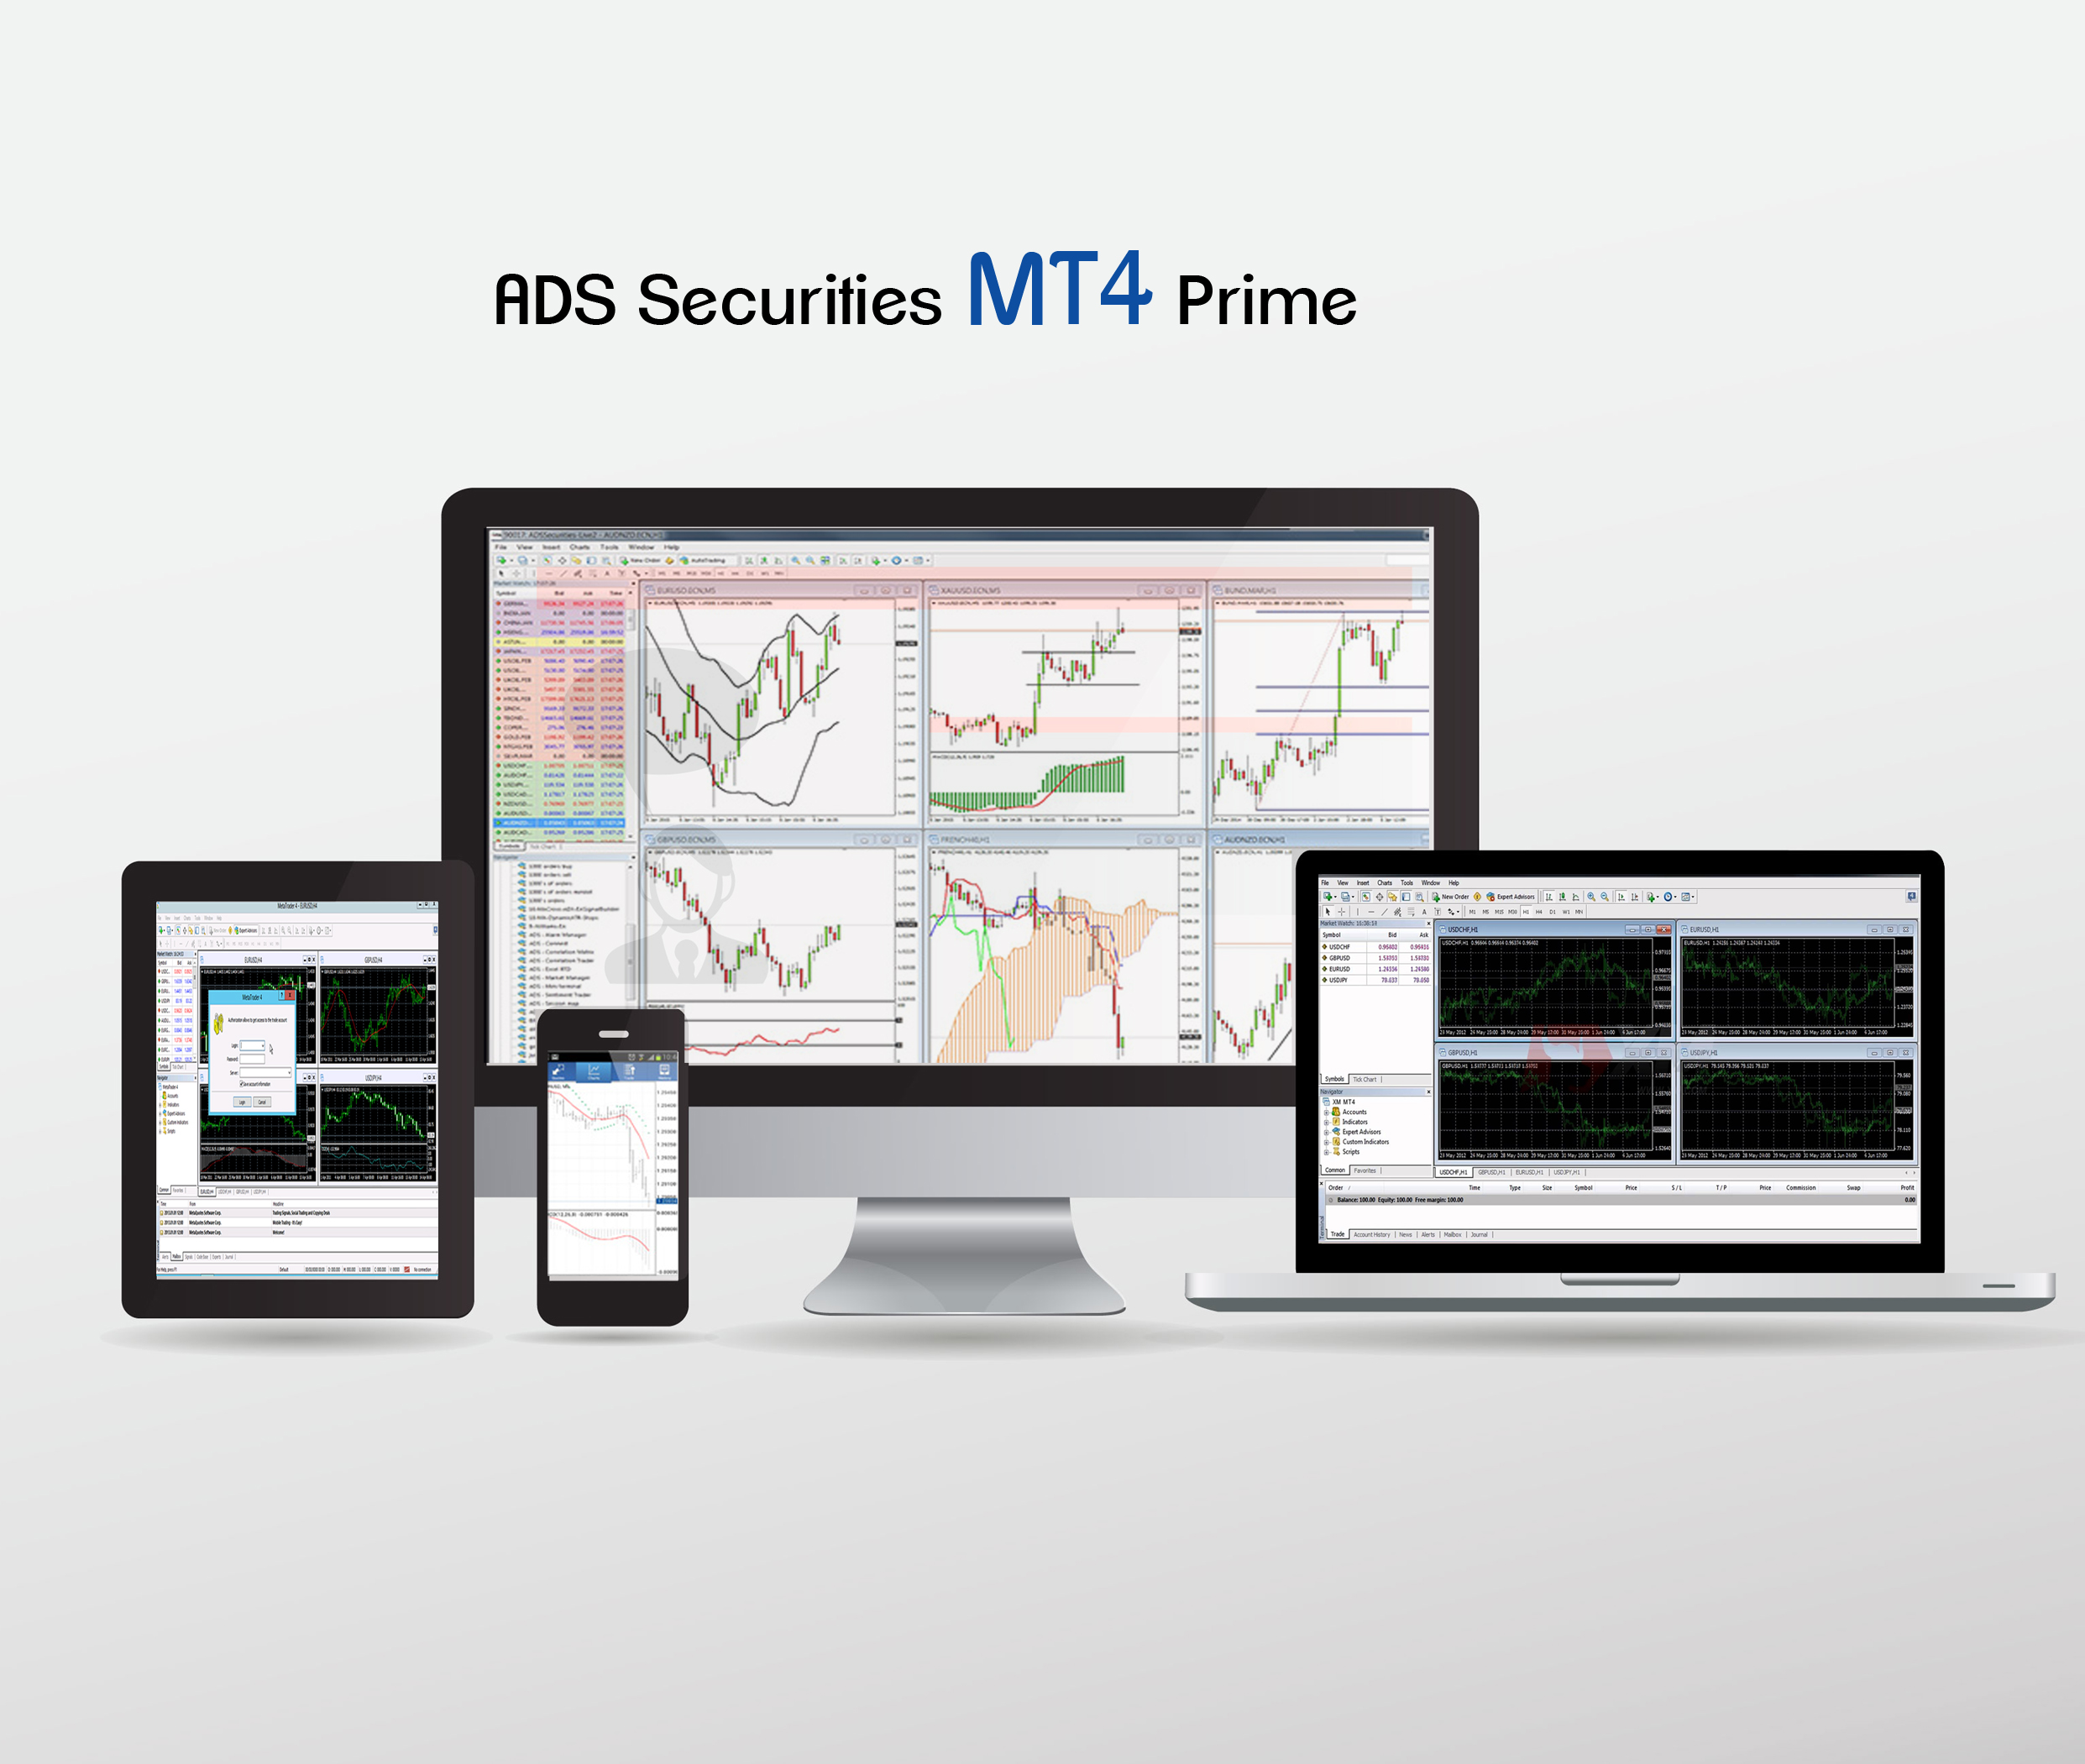 Ads securities forex micro account